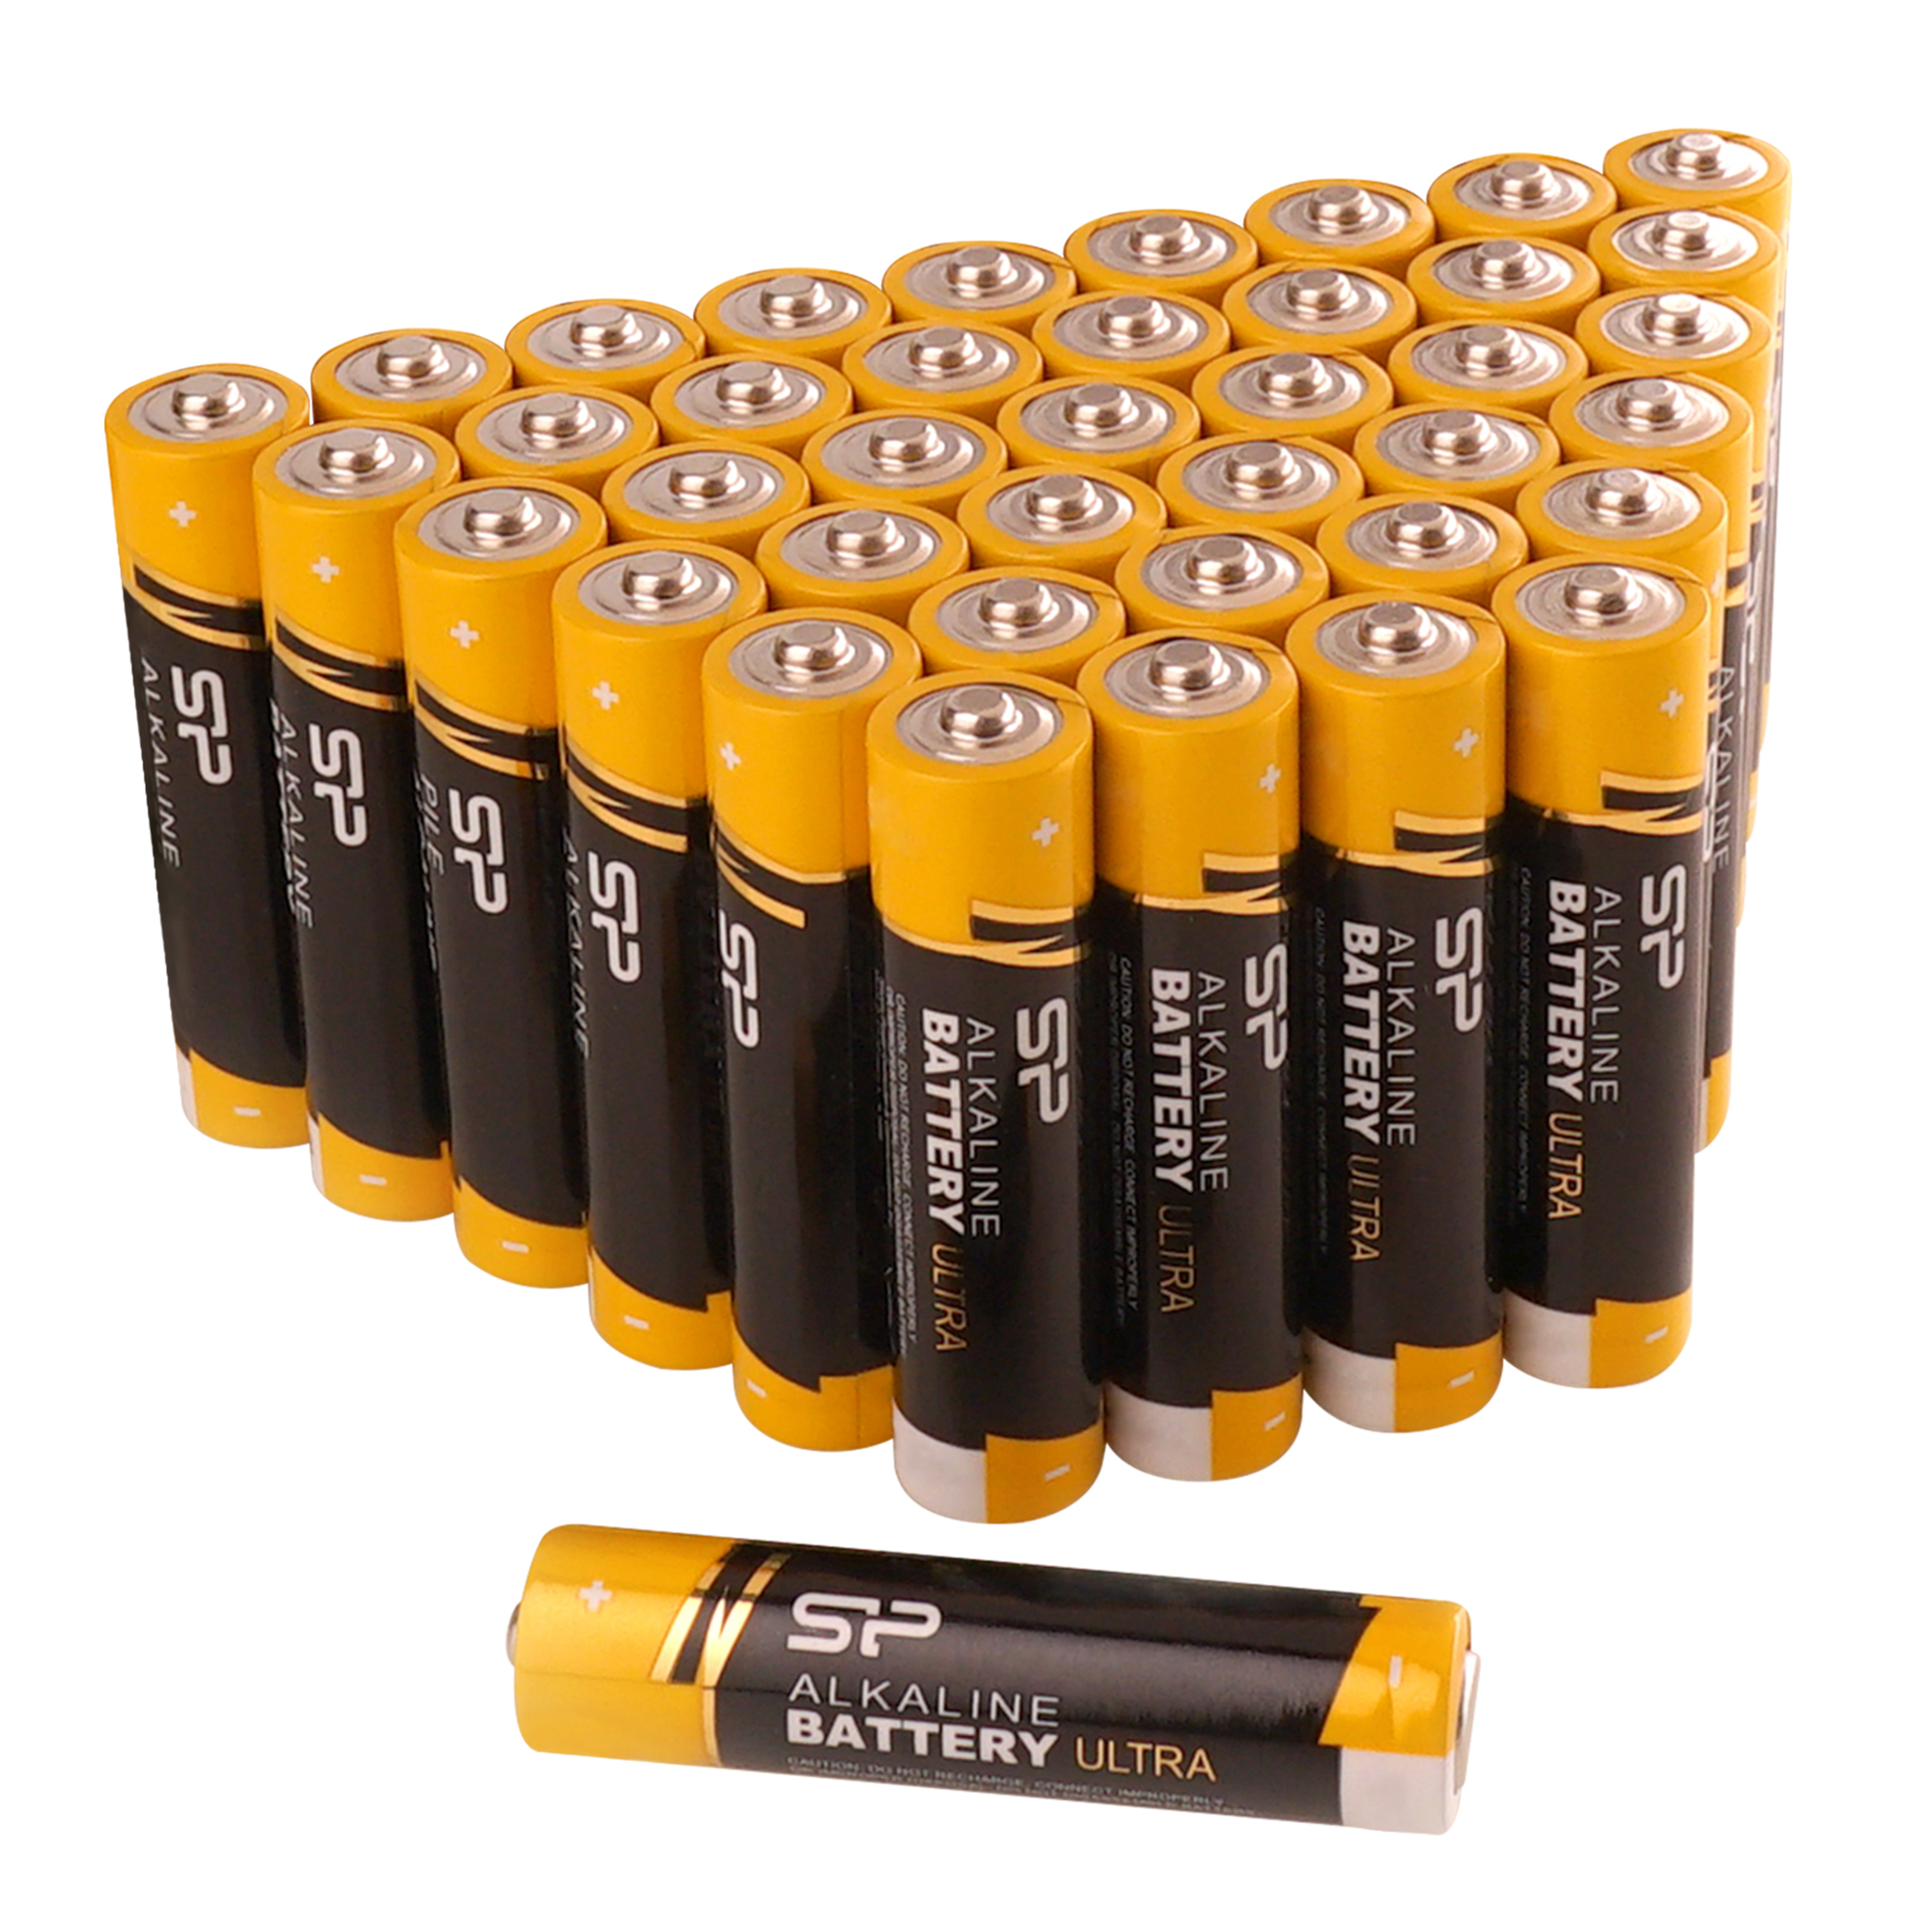 Silicon Power Ultra Alkaline AAA Batteries, 40 Count